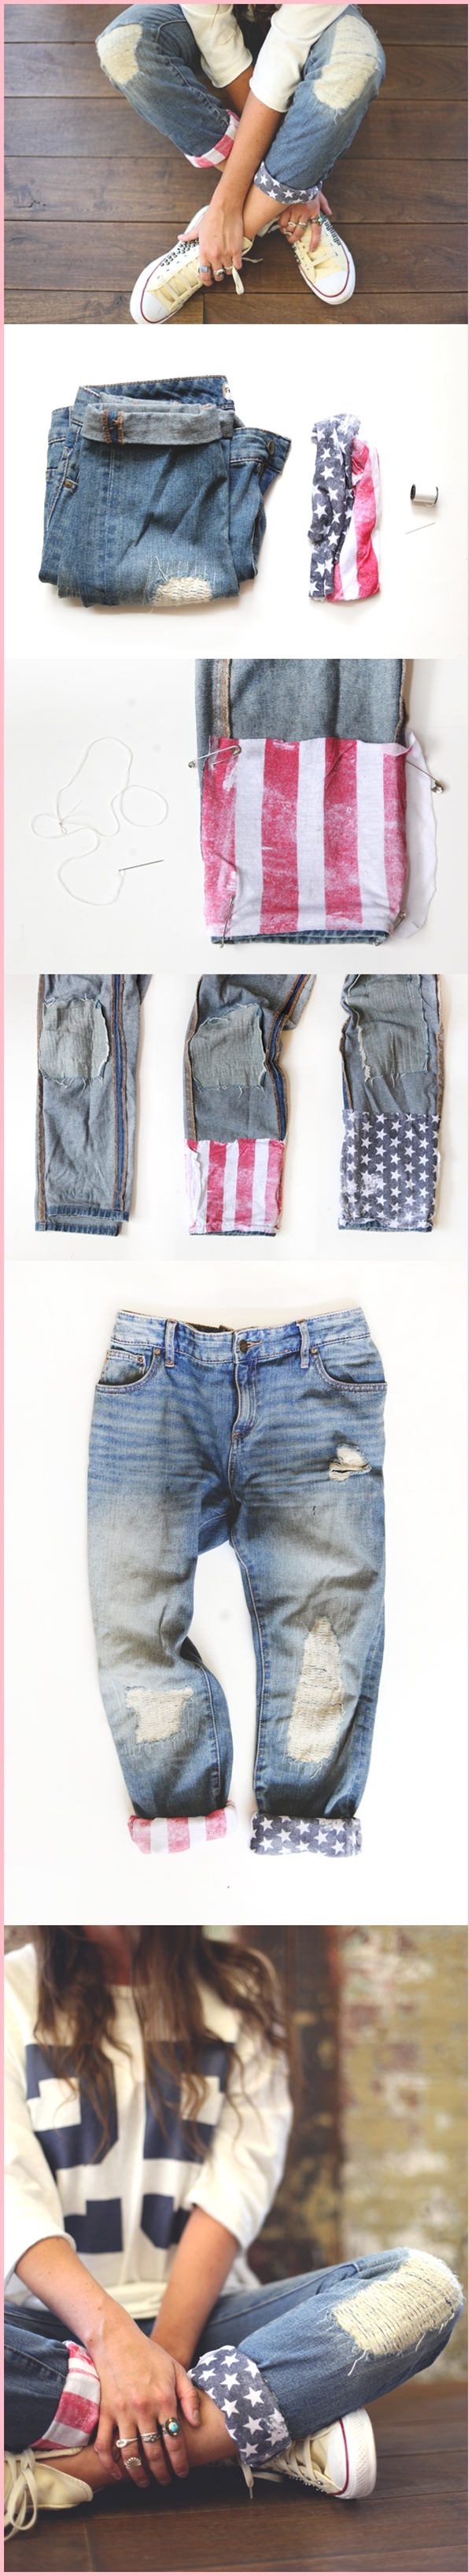 diy-jeans-refashion-techniques-and-inspirations-to-begin-new-trends